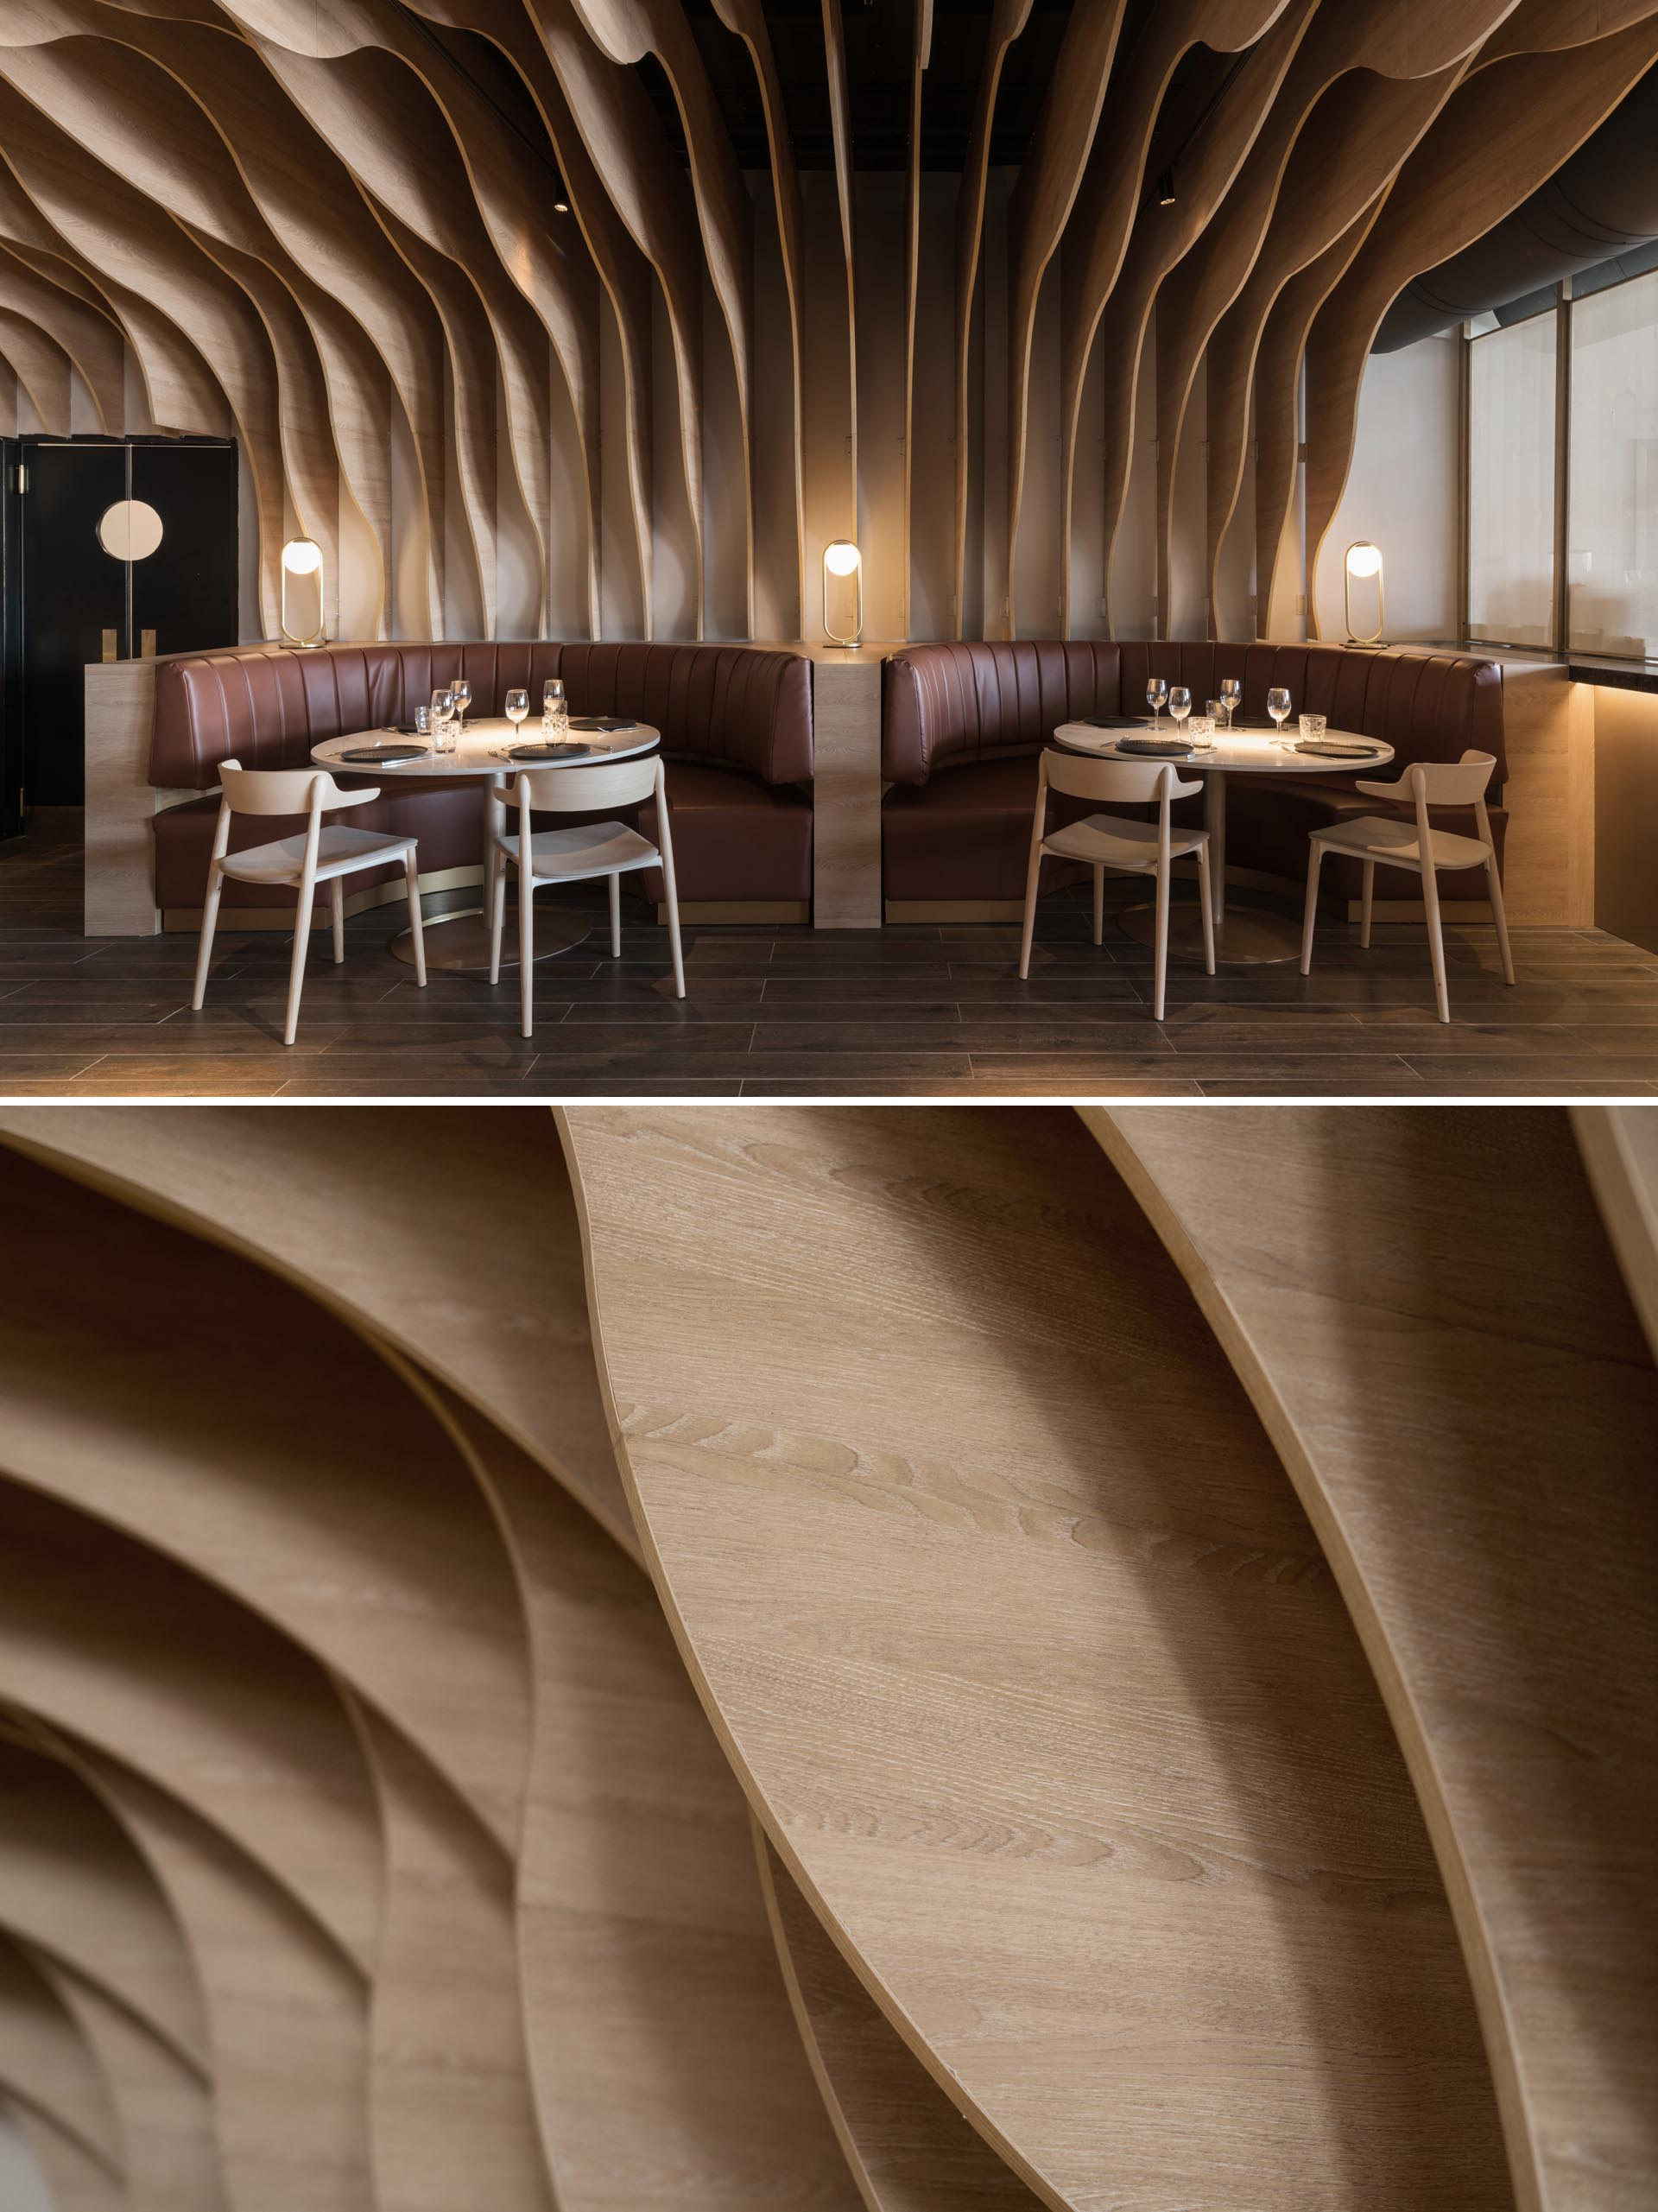 A modern restaurant with sculptural wood fins that cover the walls and ceiling, and match the surrounding furniture and banquettes.